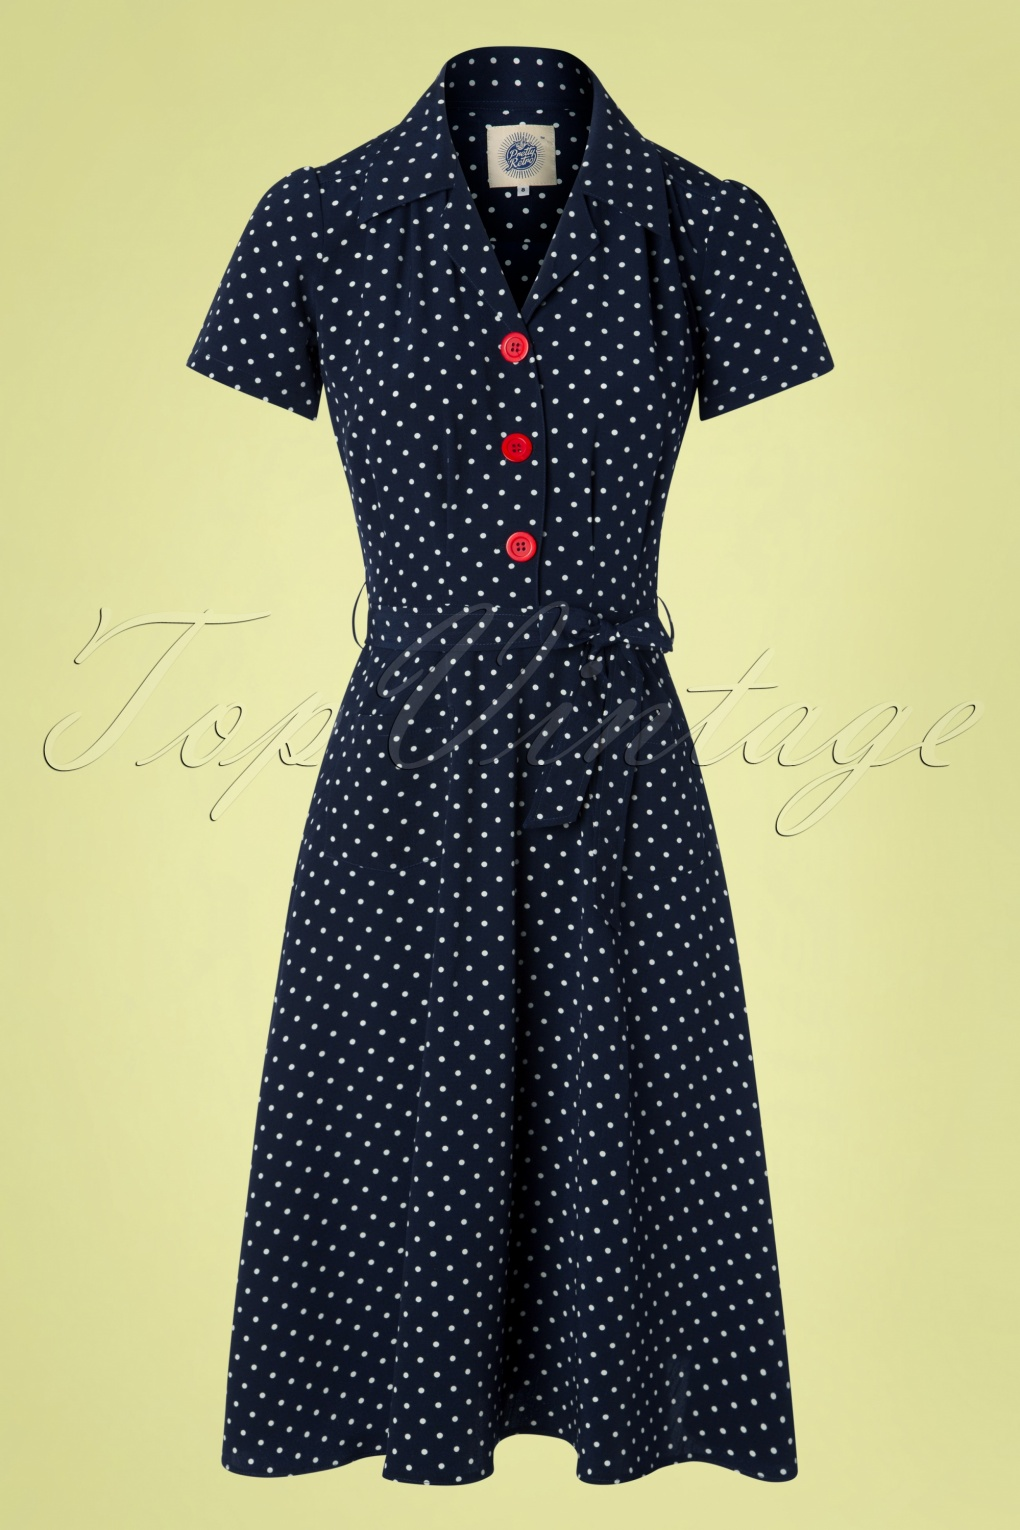 33723f88 50 Vintage Inspired Clothing Stores 40s Pretty Polkadot Shirt Dress in Navy   64.81 AT vintagedancer